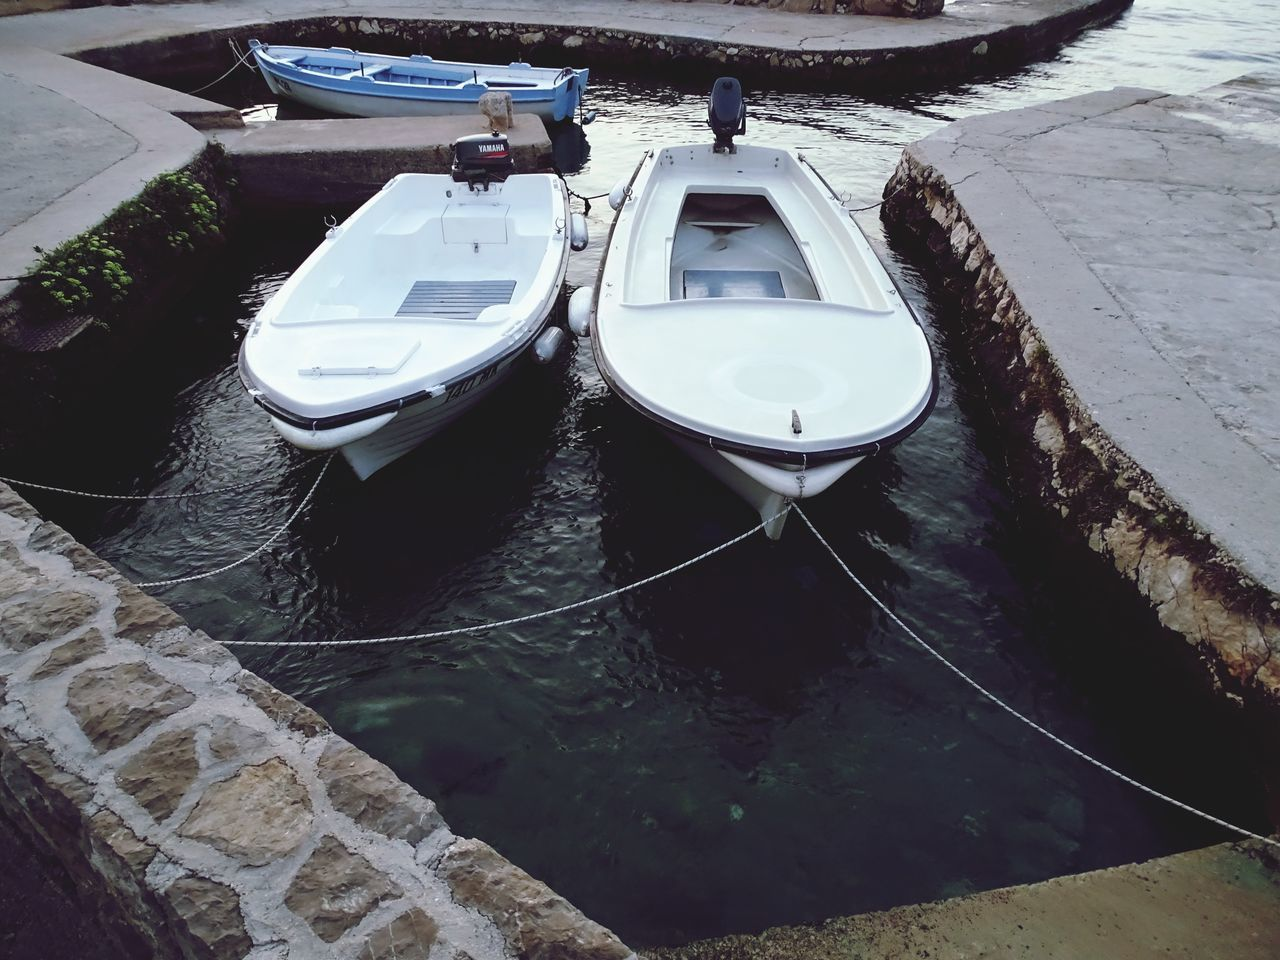 High Angle View Of Boats Moored In Water